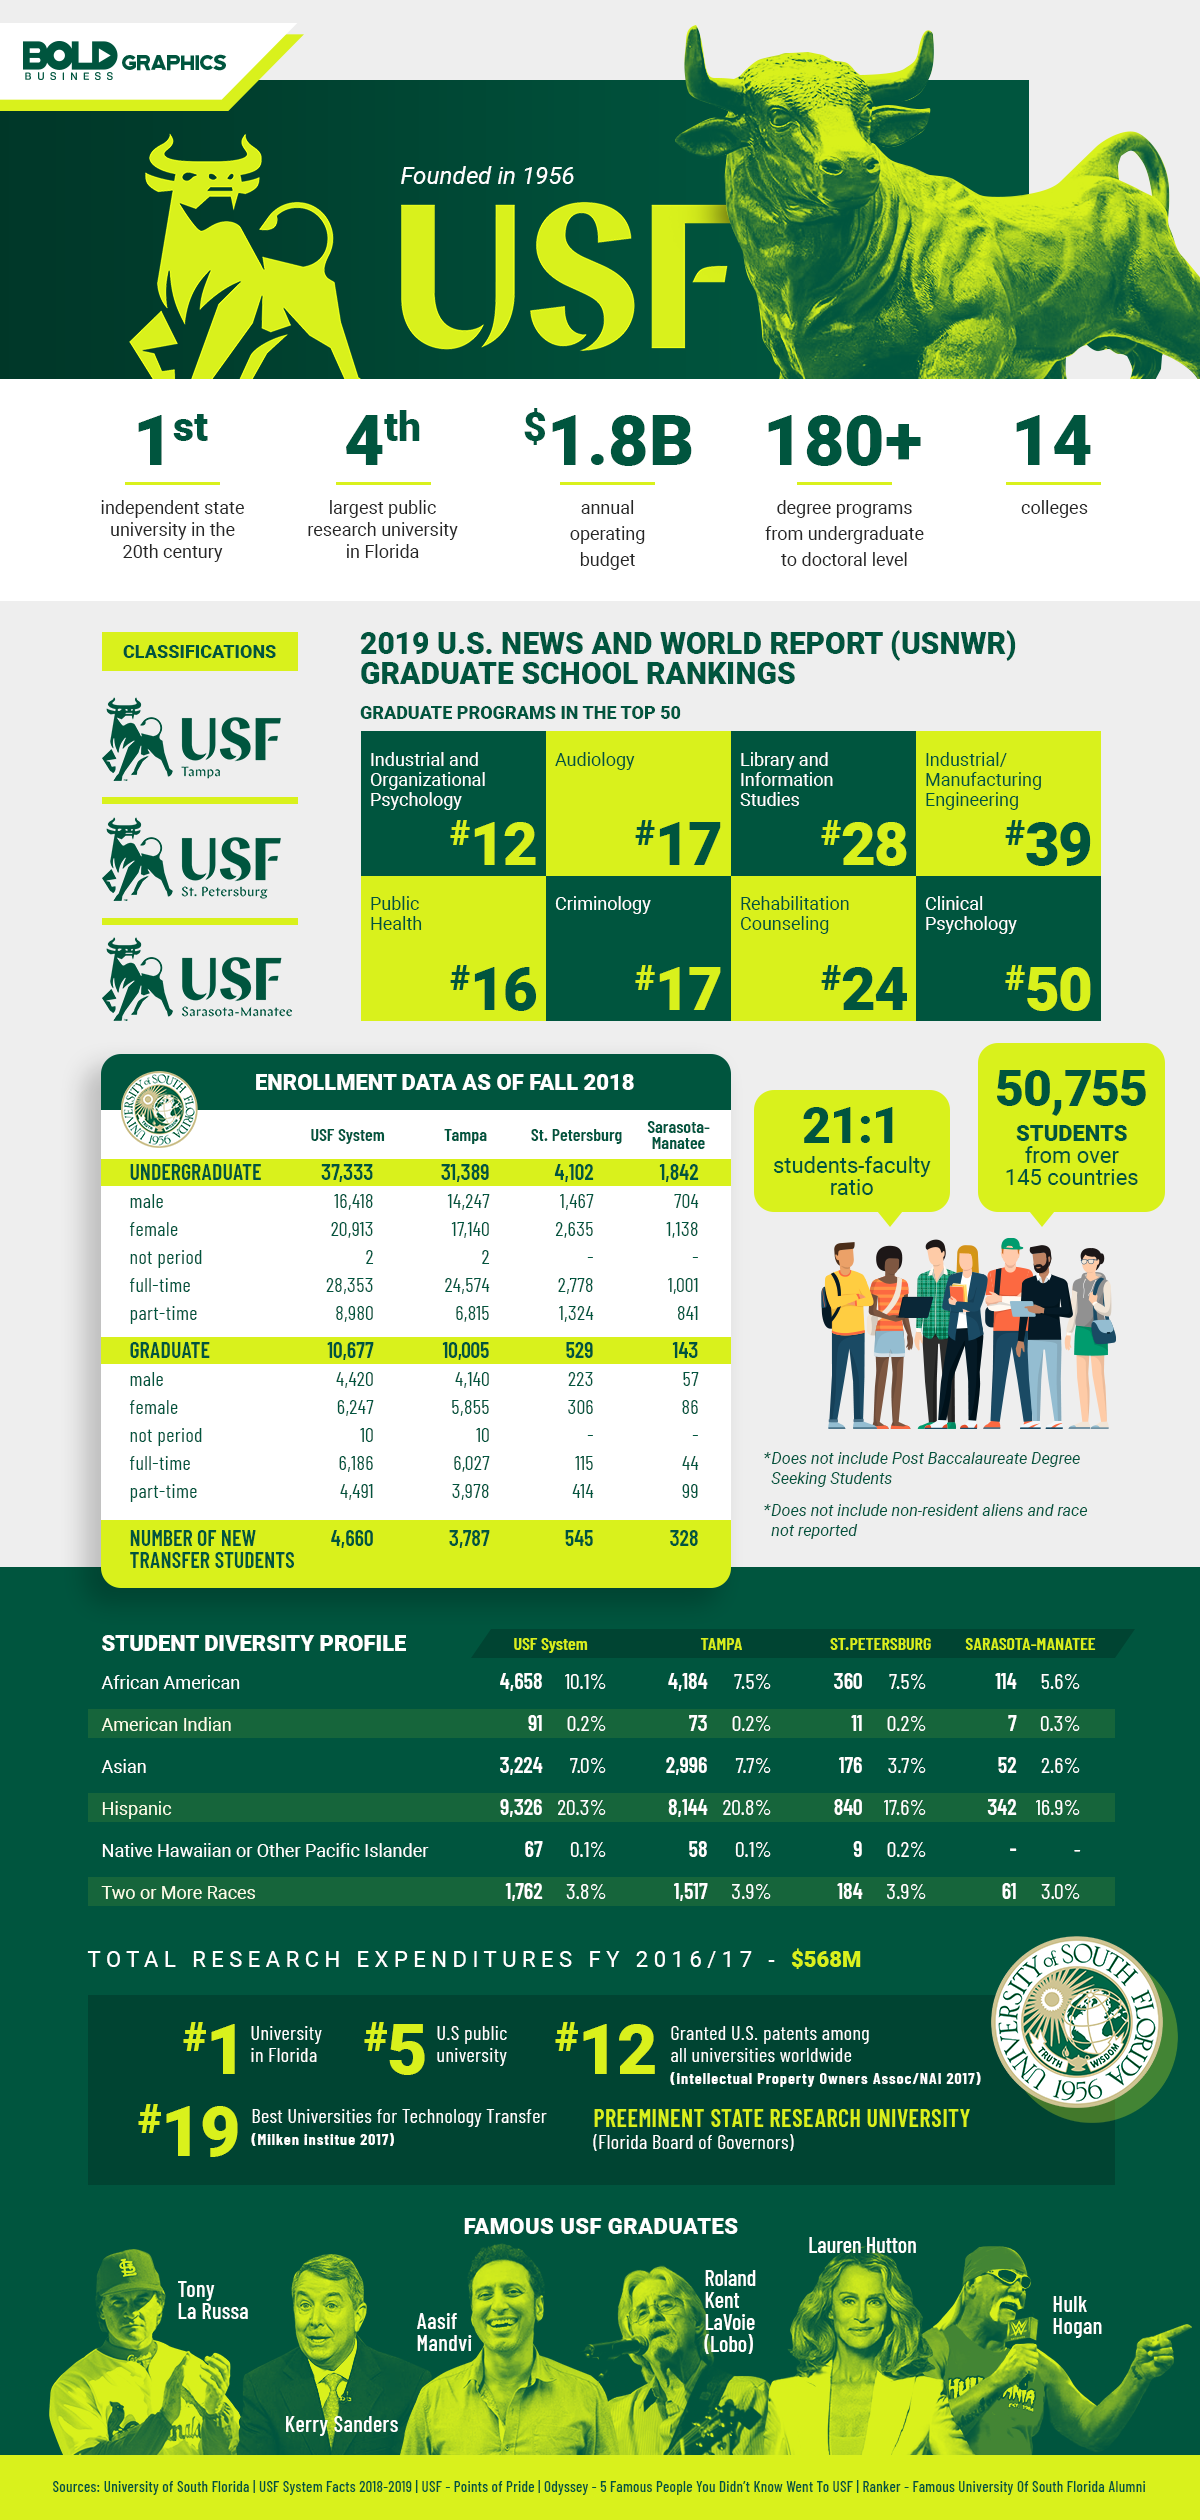 USF on the verge of preeminence Bold Infrographics.